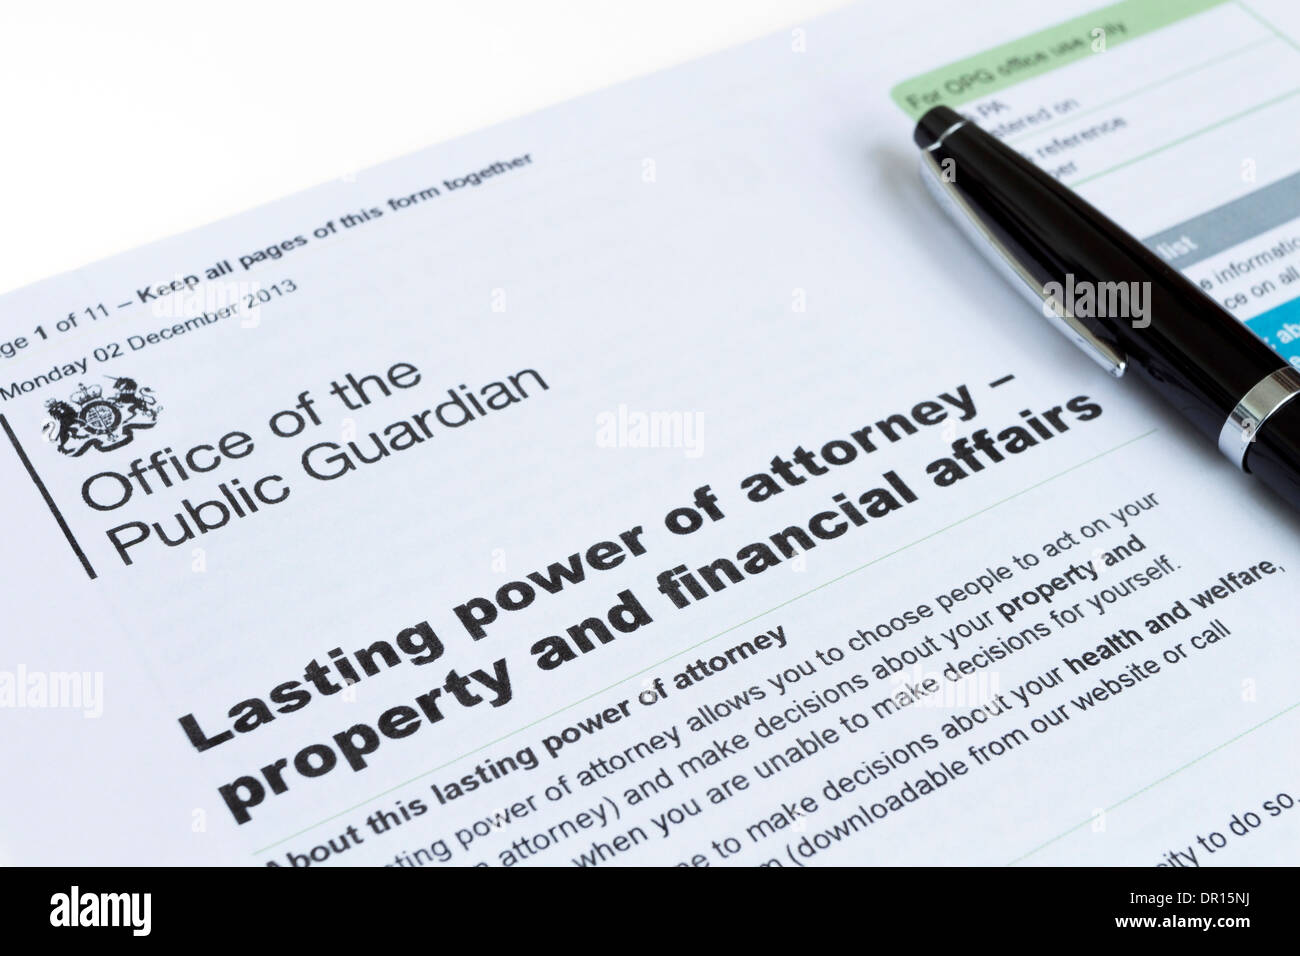 Lasting Power of Attorney Property and Financial Affairs Form From the Office of the Public Guardian UK - Stock Image